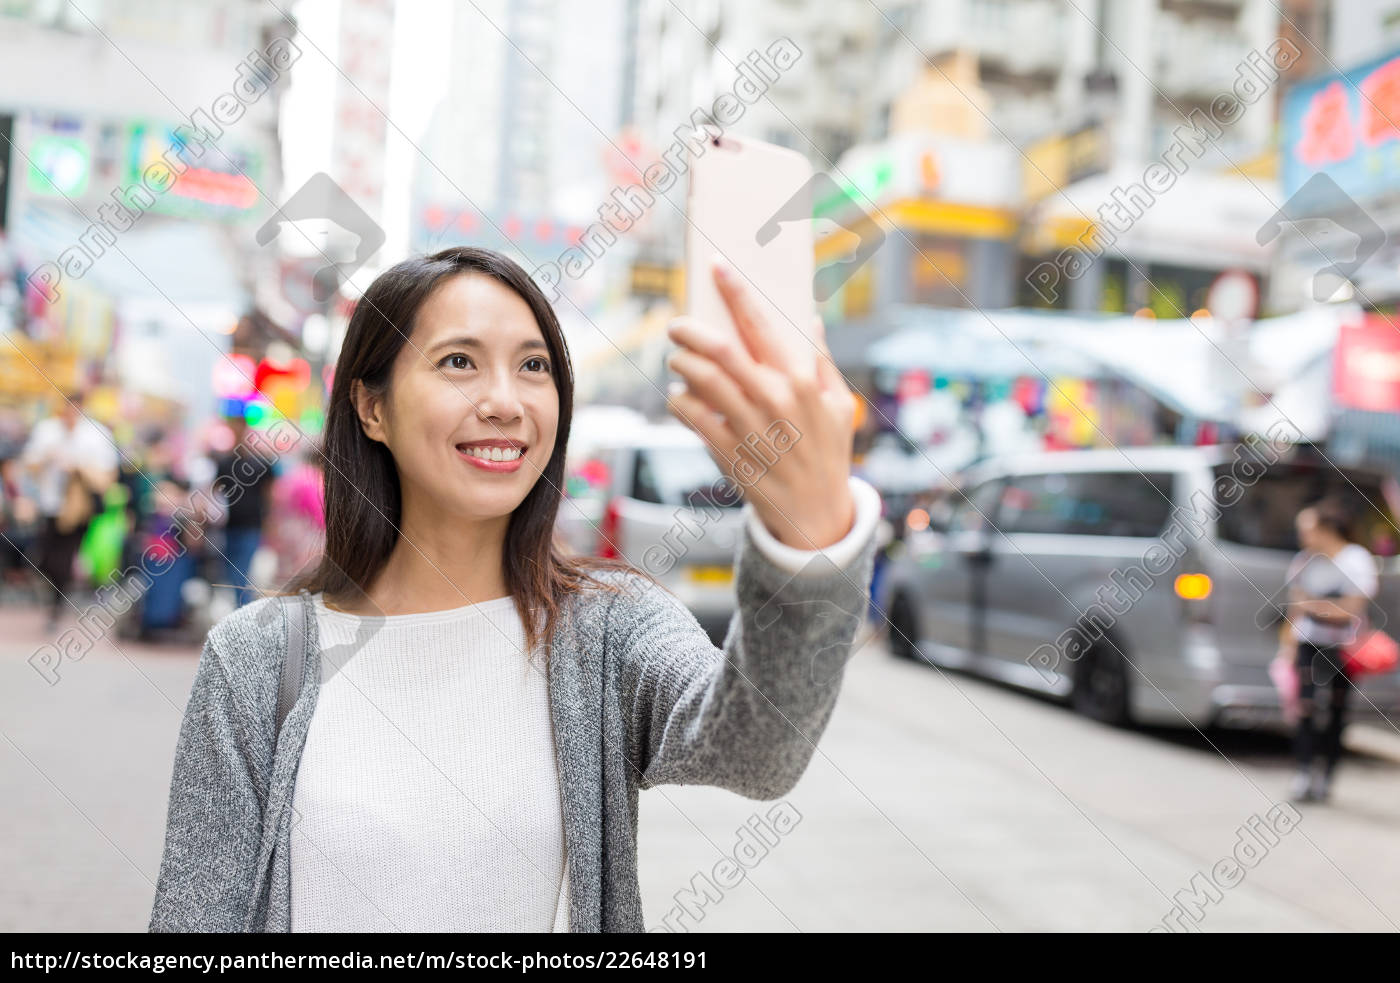 woman, having, selfie, with, cellphone, in - 22648191